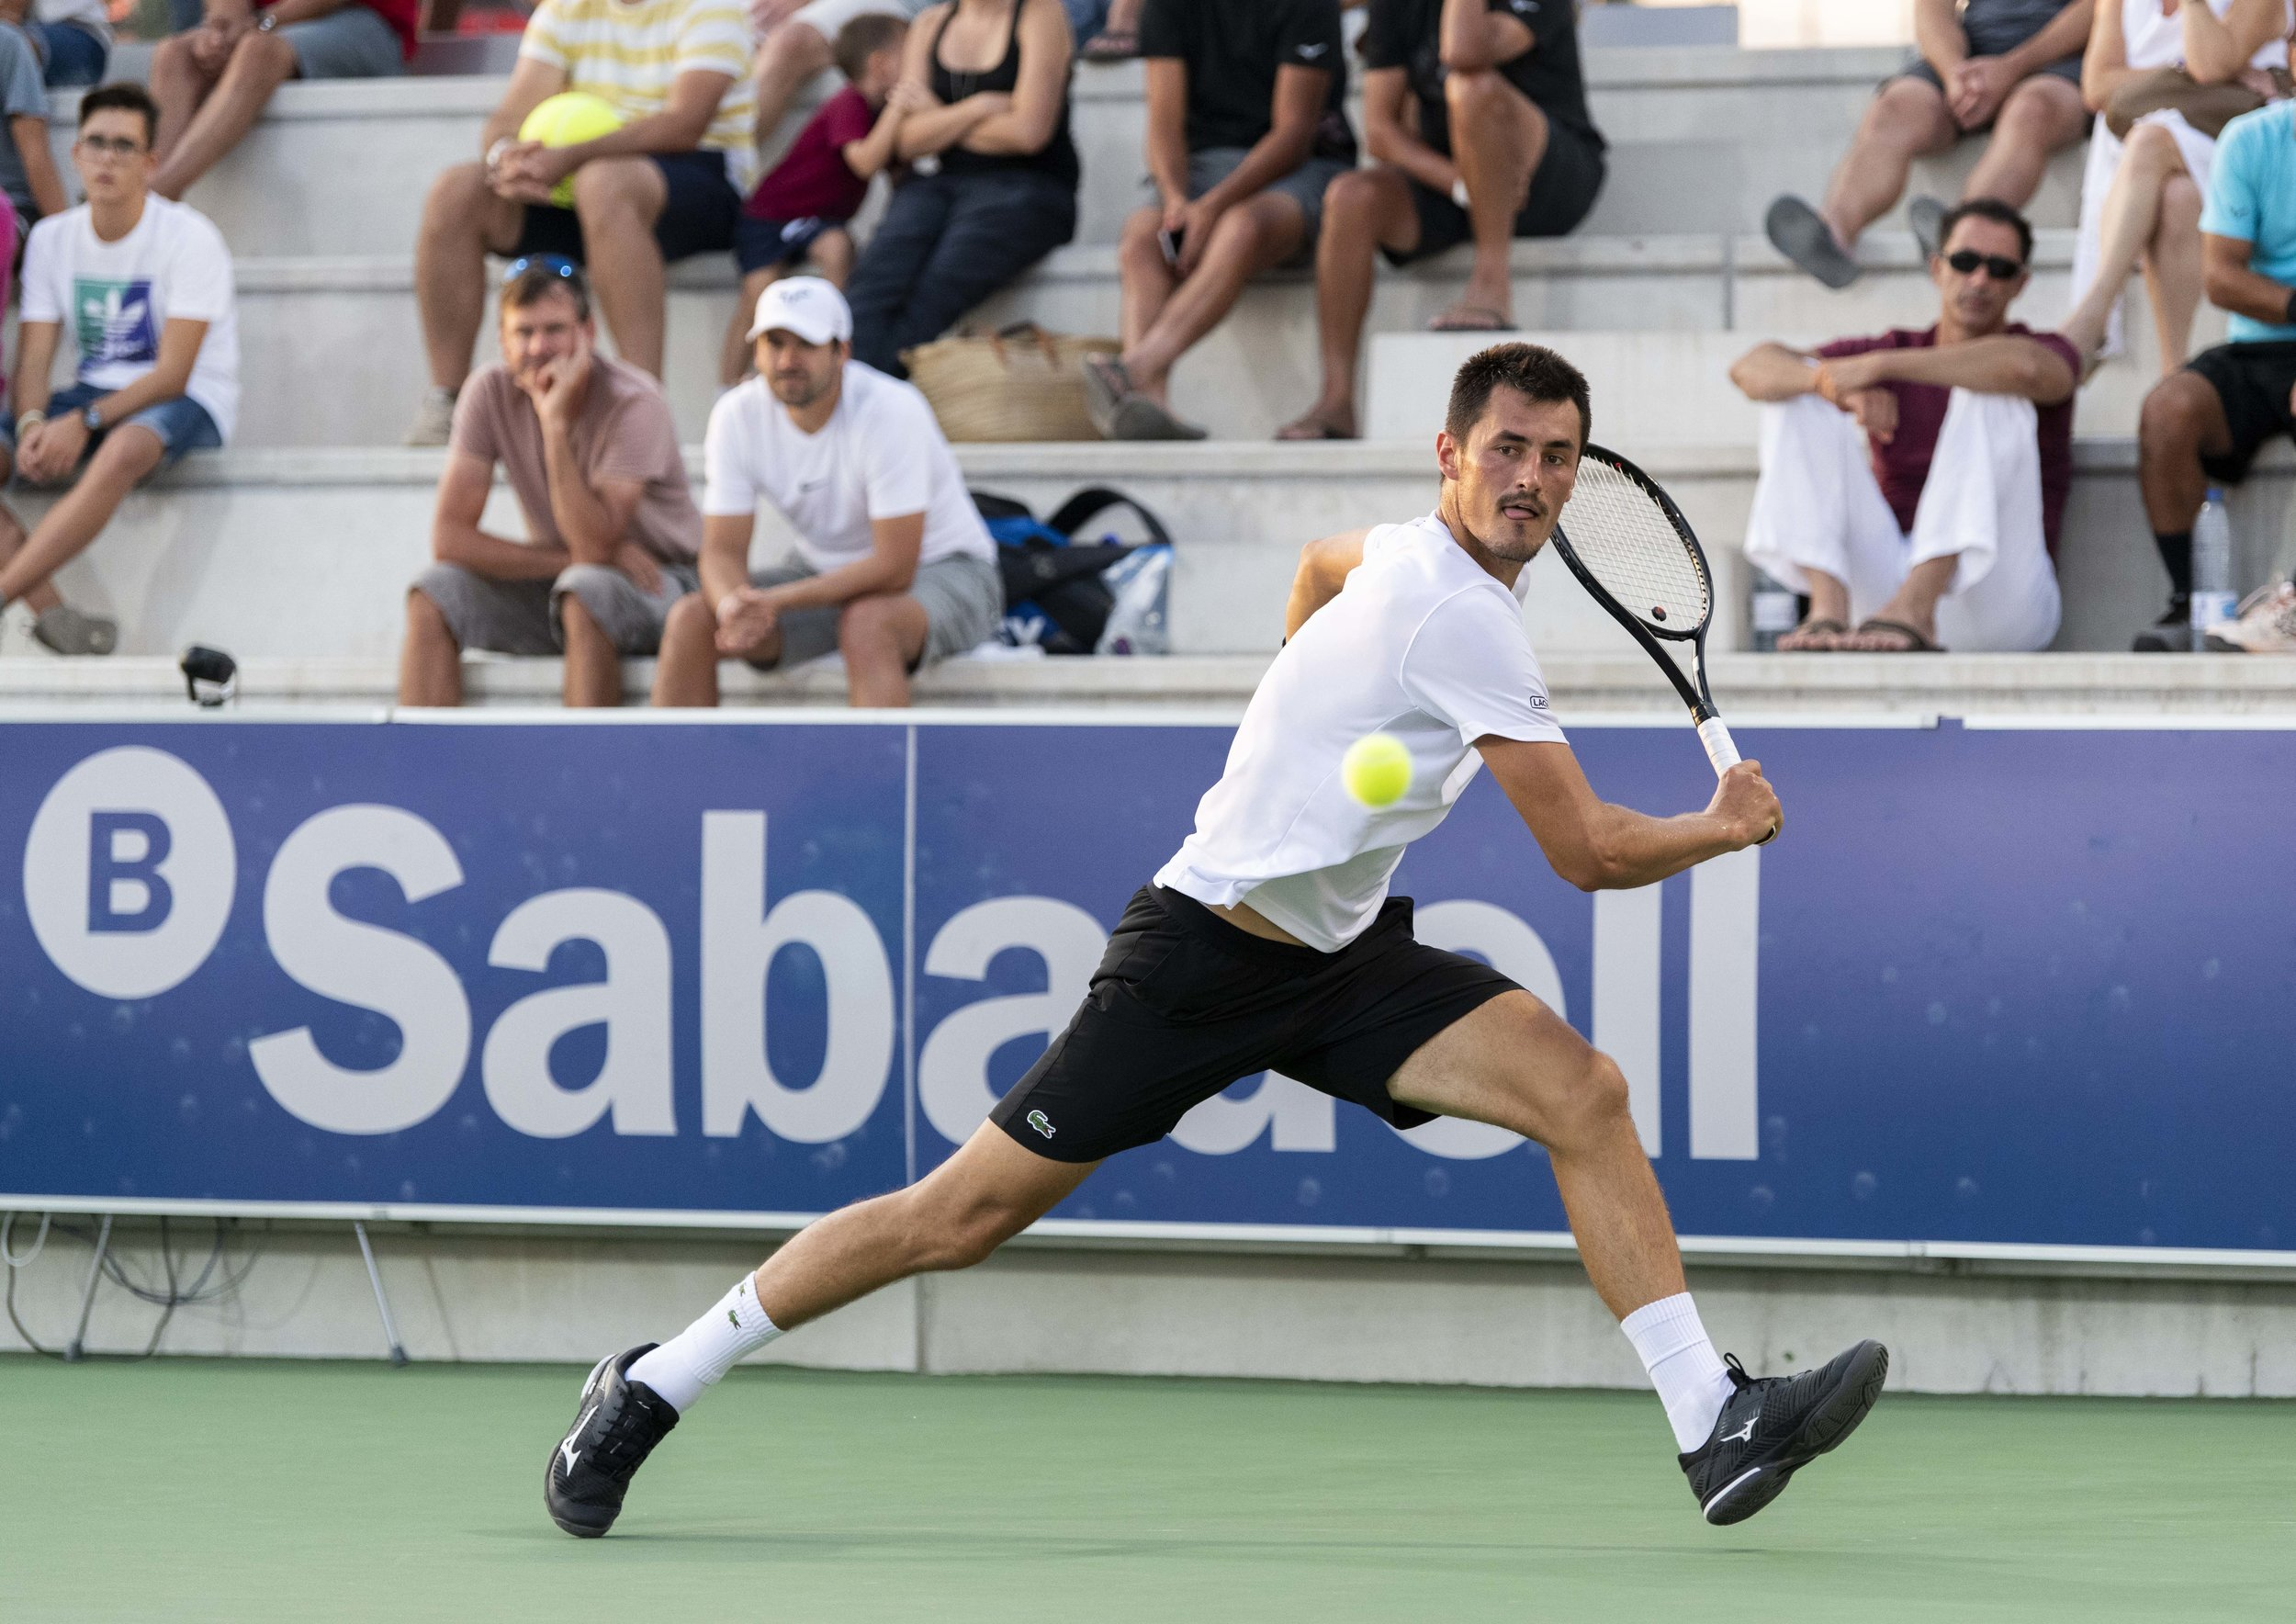 Bernard Tomic RNOBS 2018_935.jpg